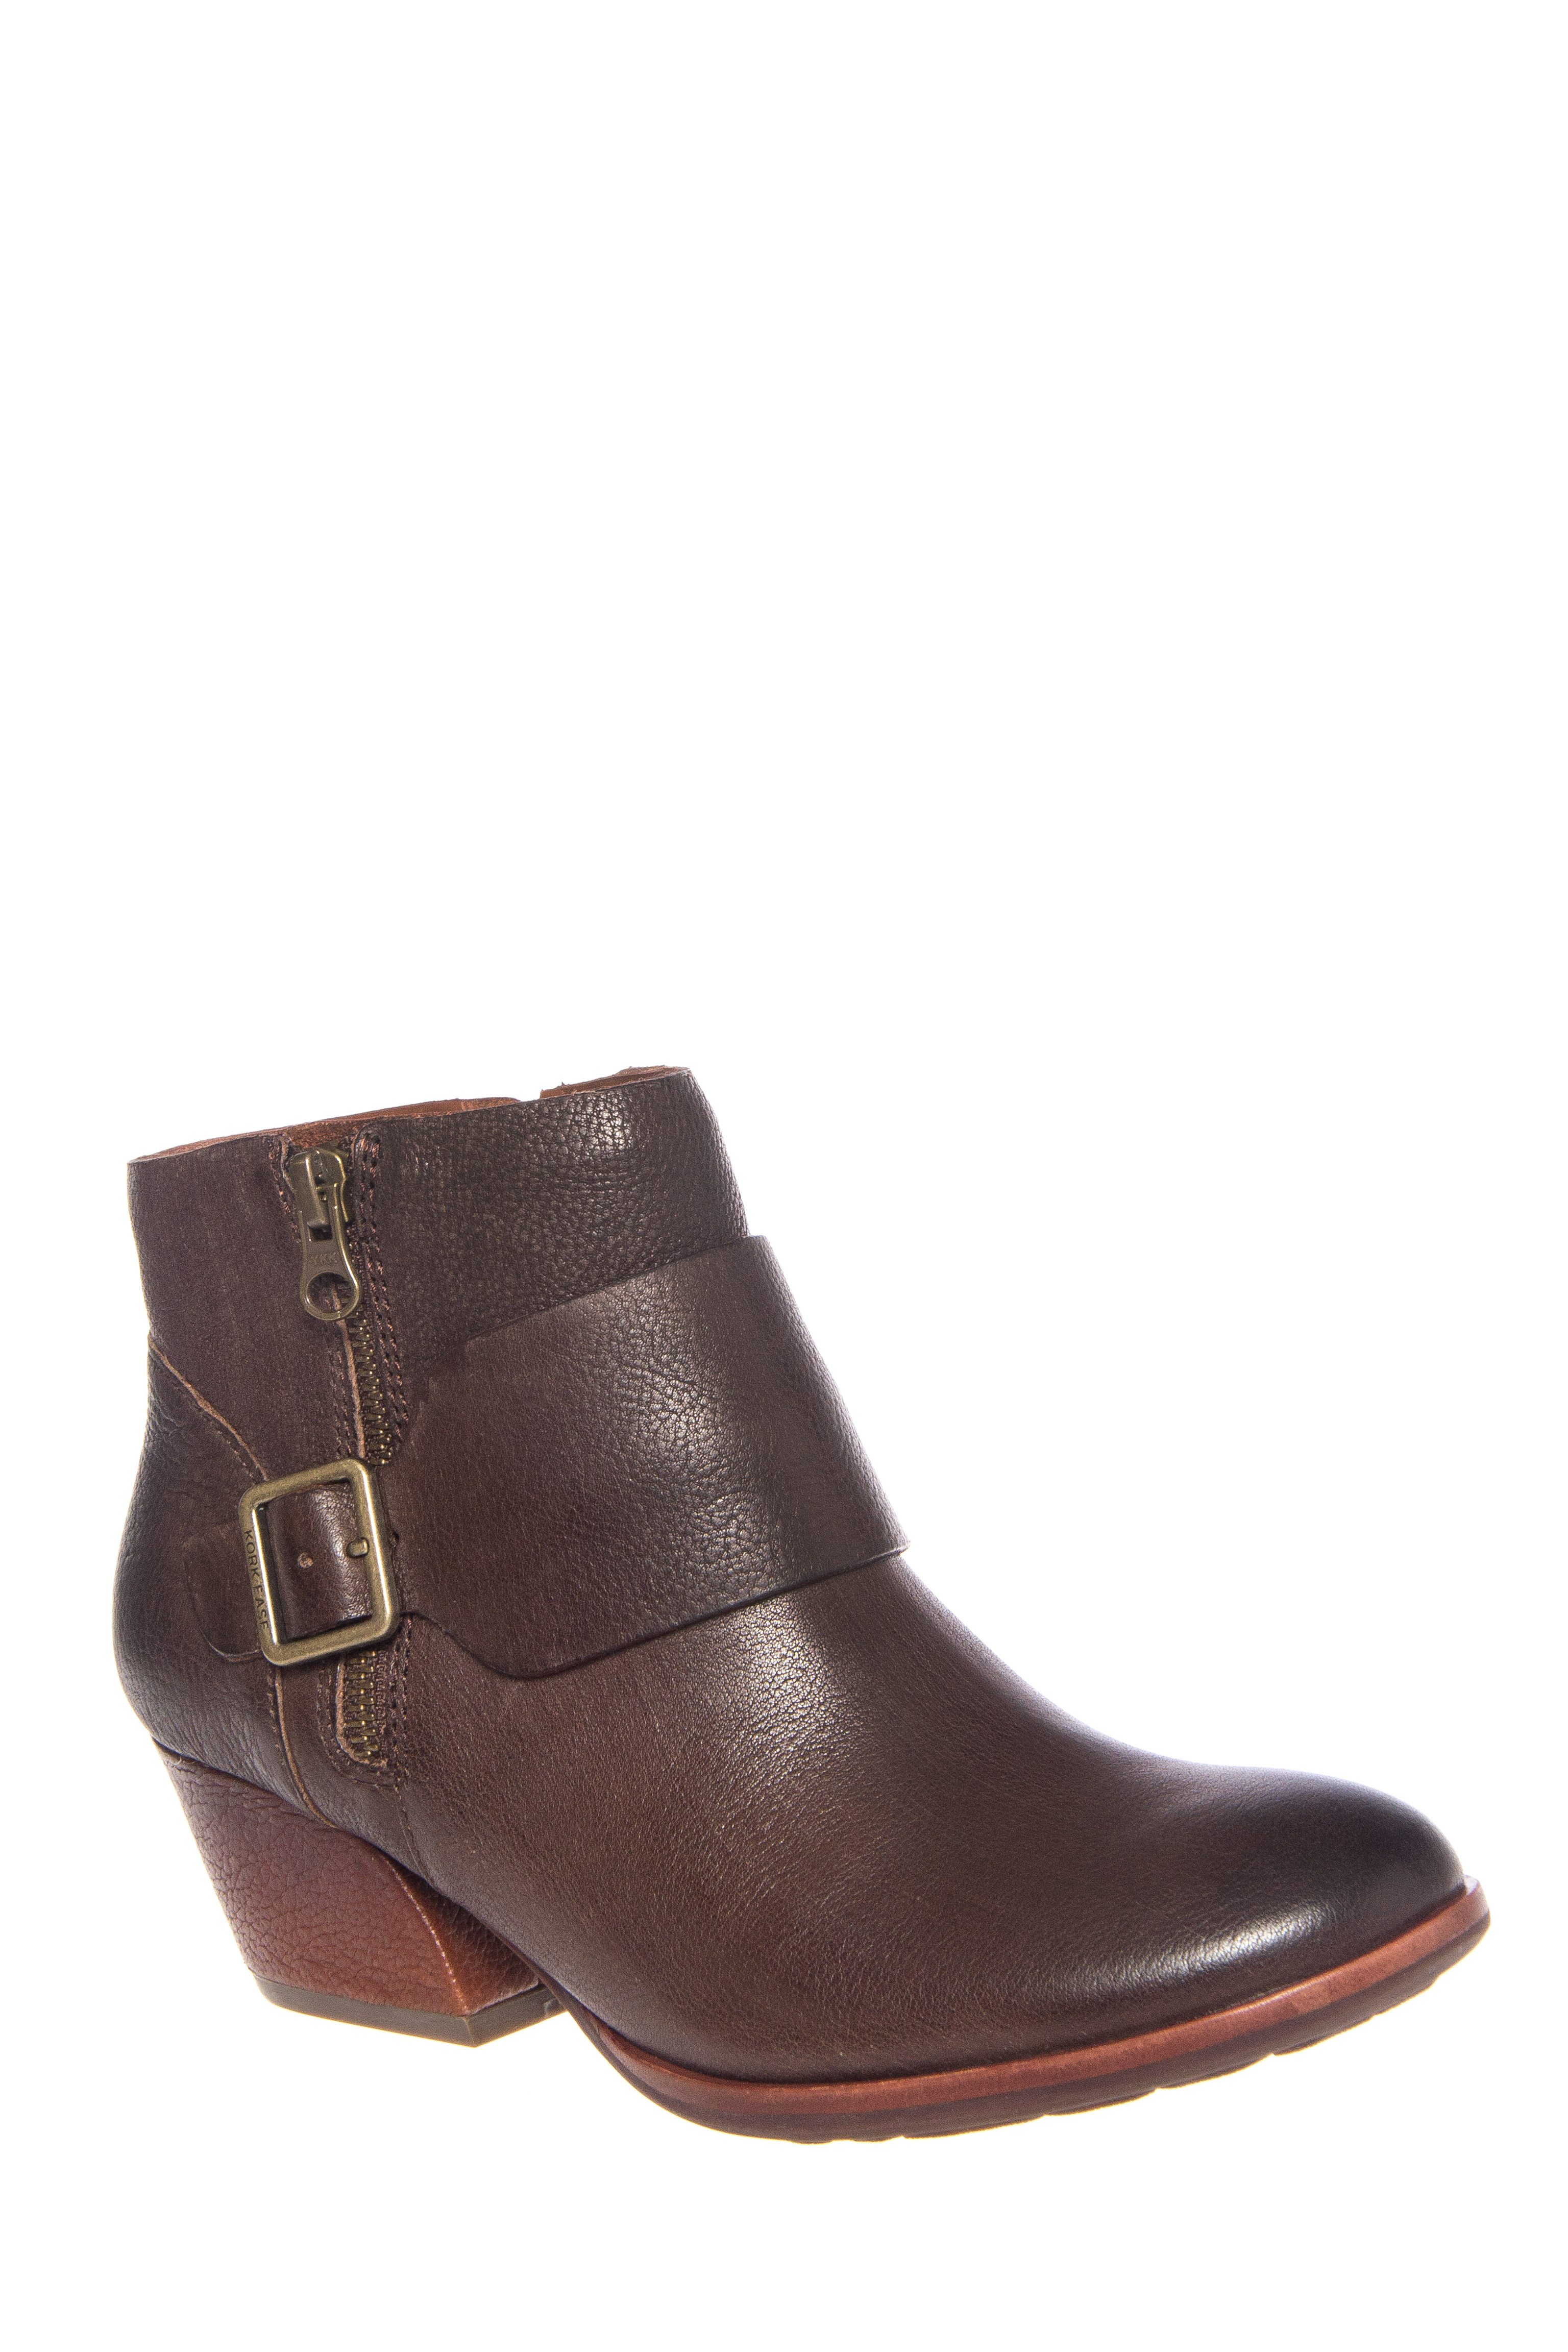 Kork-Ease Isa Low Heel Ankle Booties